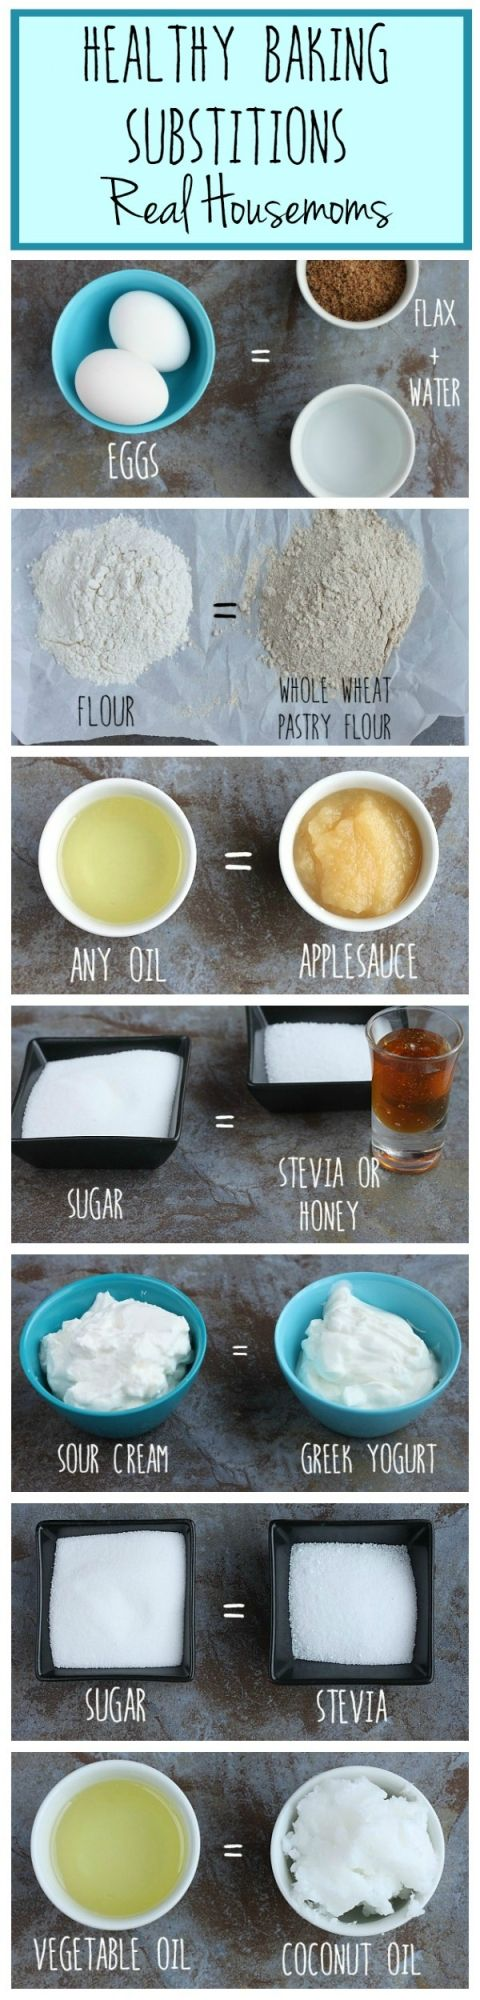 Healthy Baking Substitutions to Get You Healthy in the New Year | Real Housemoms